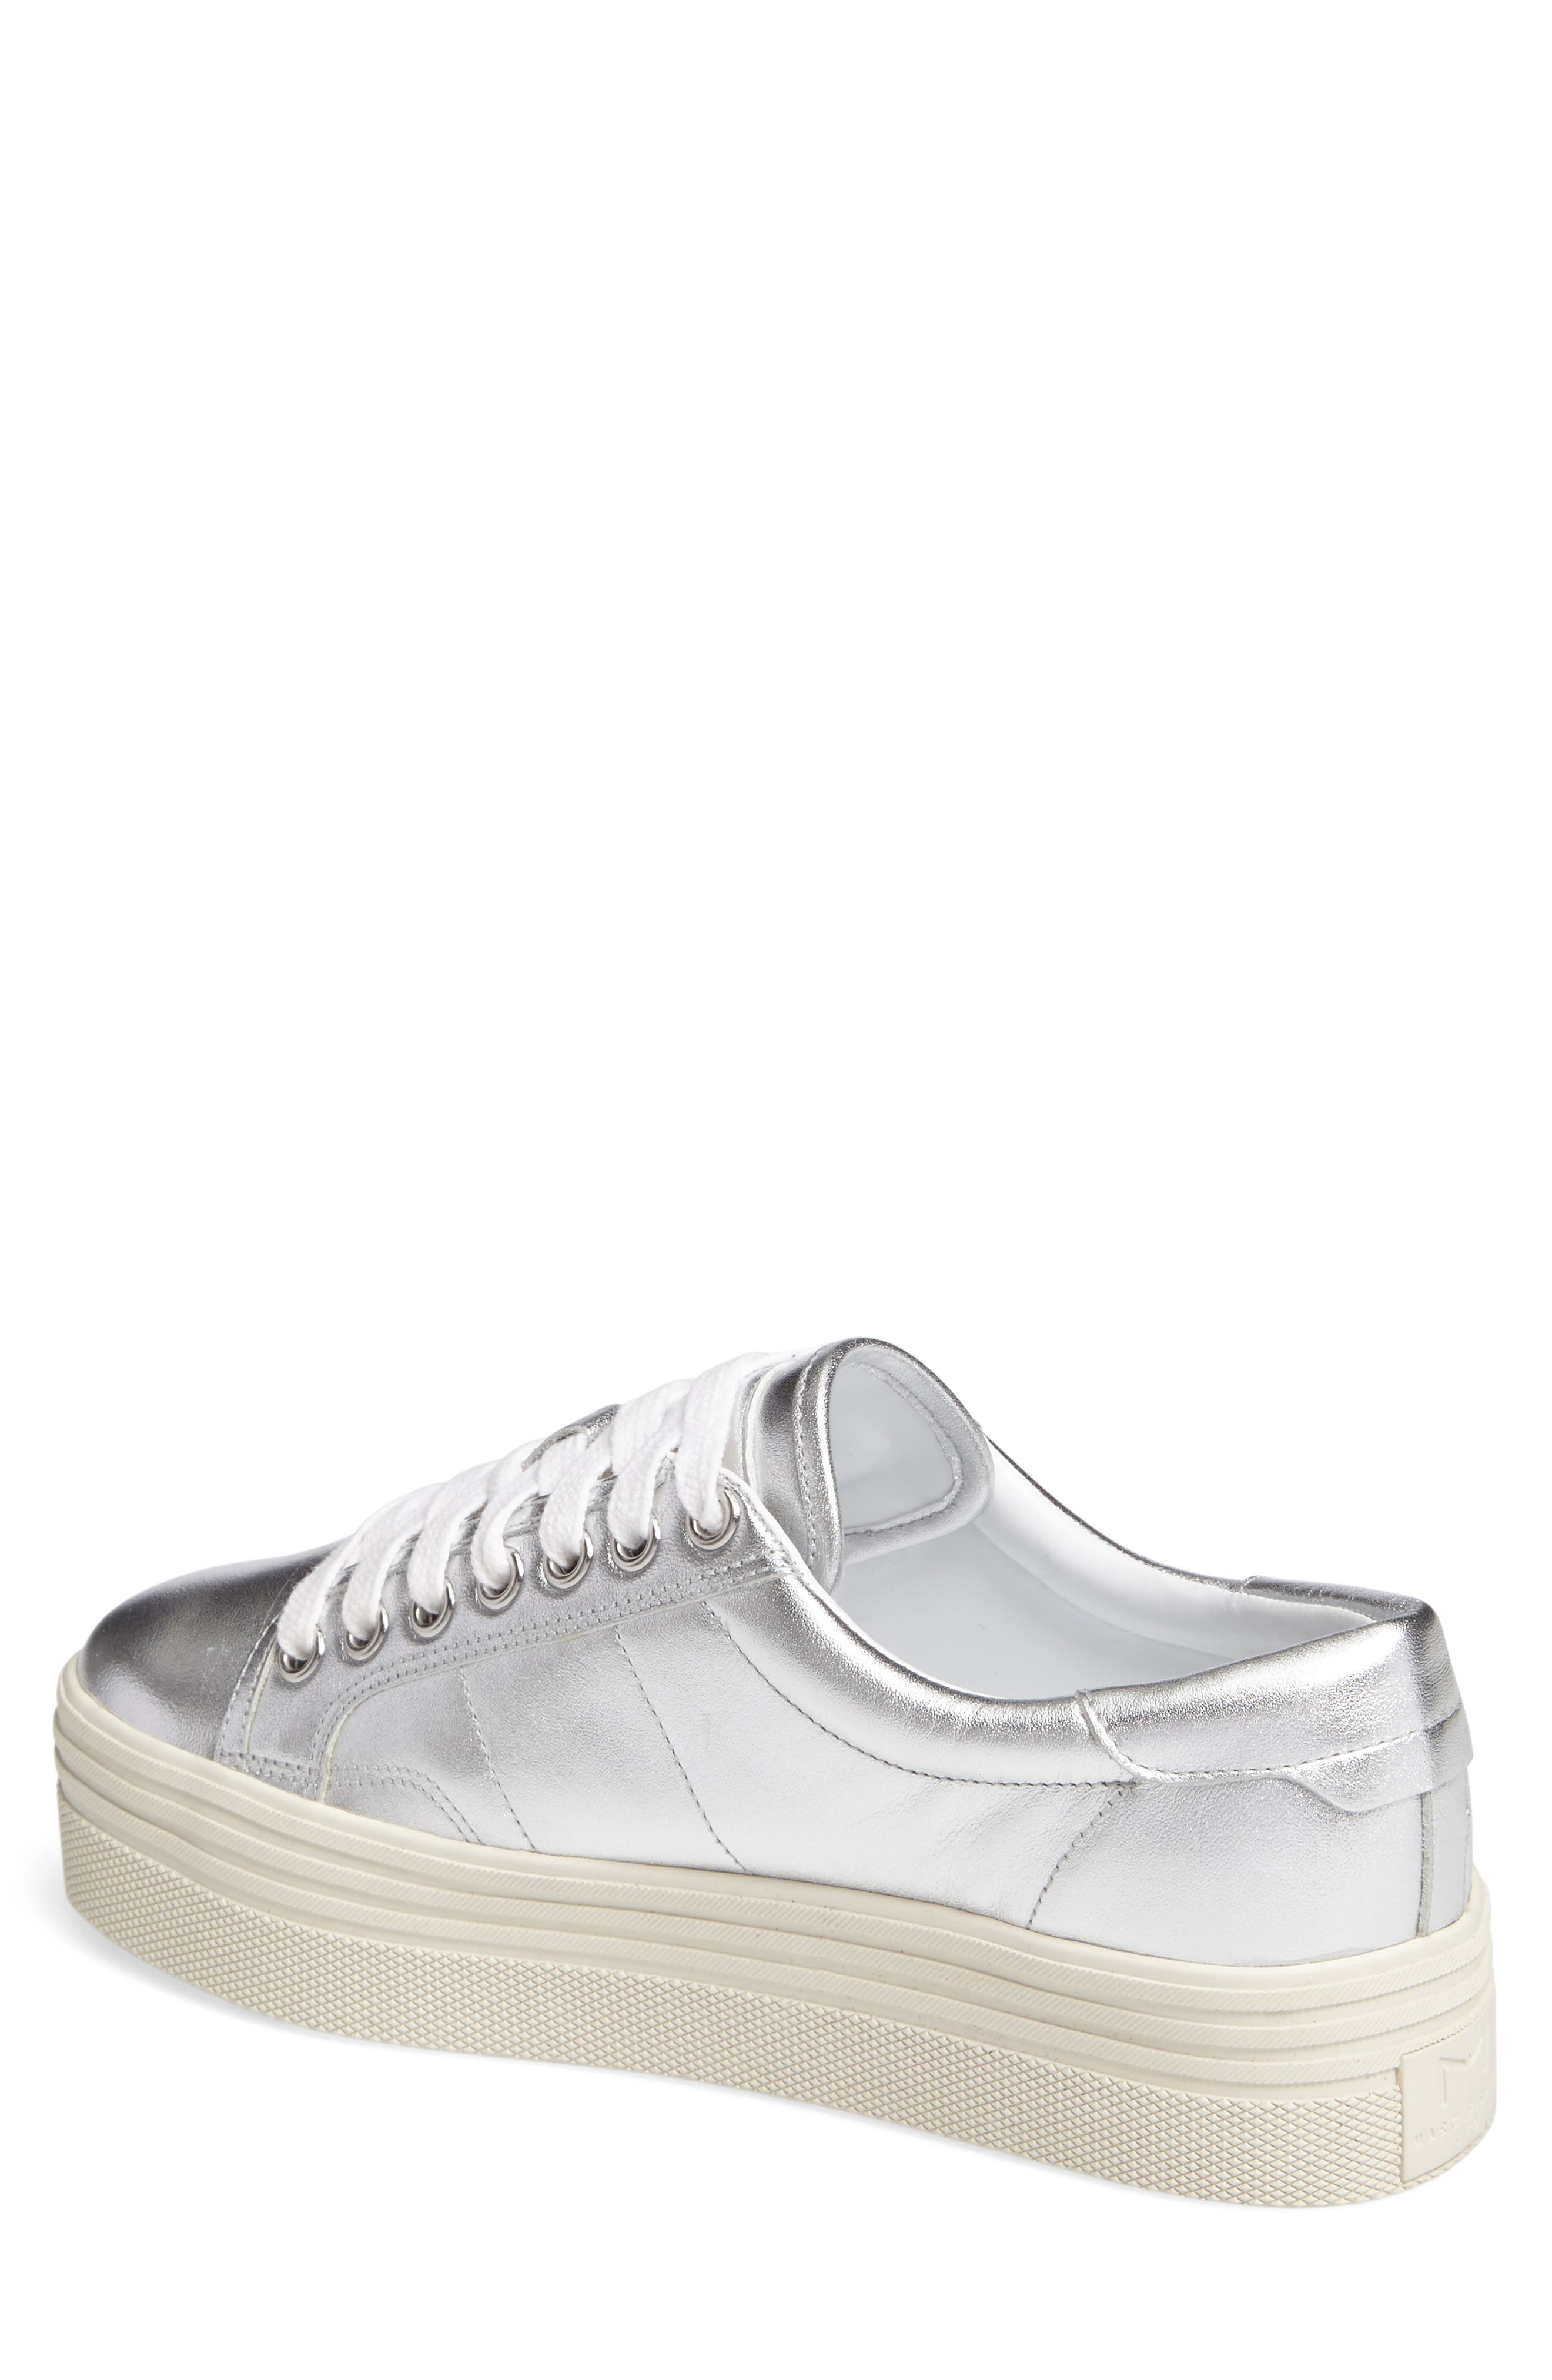 Emmy Platform Sneaker,                             Alternate thumbnail 15, color,